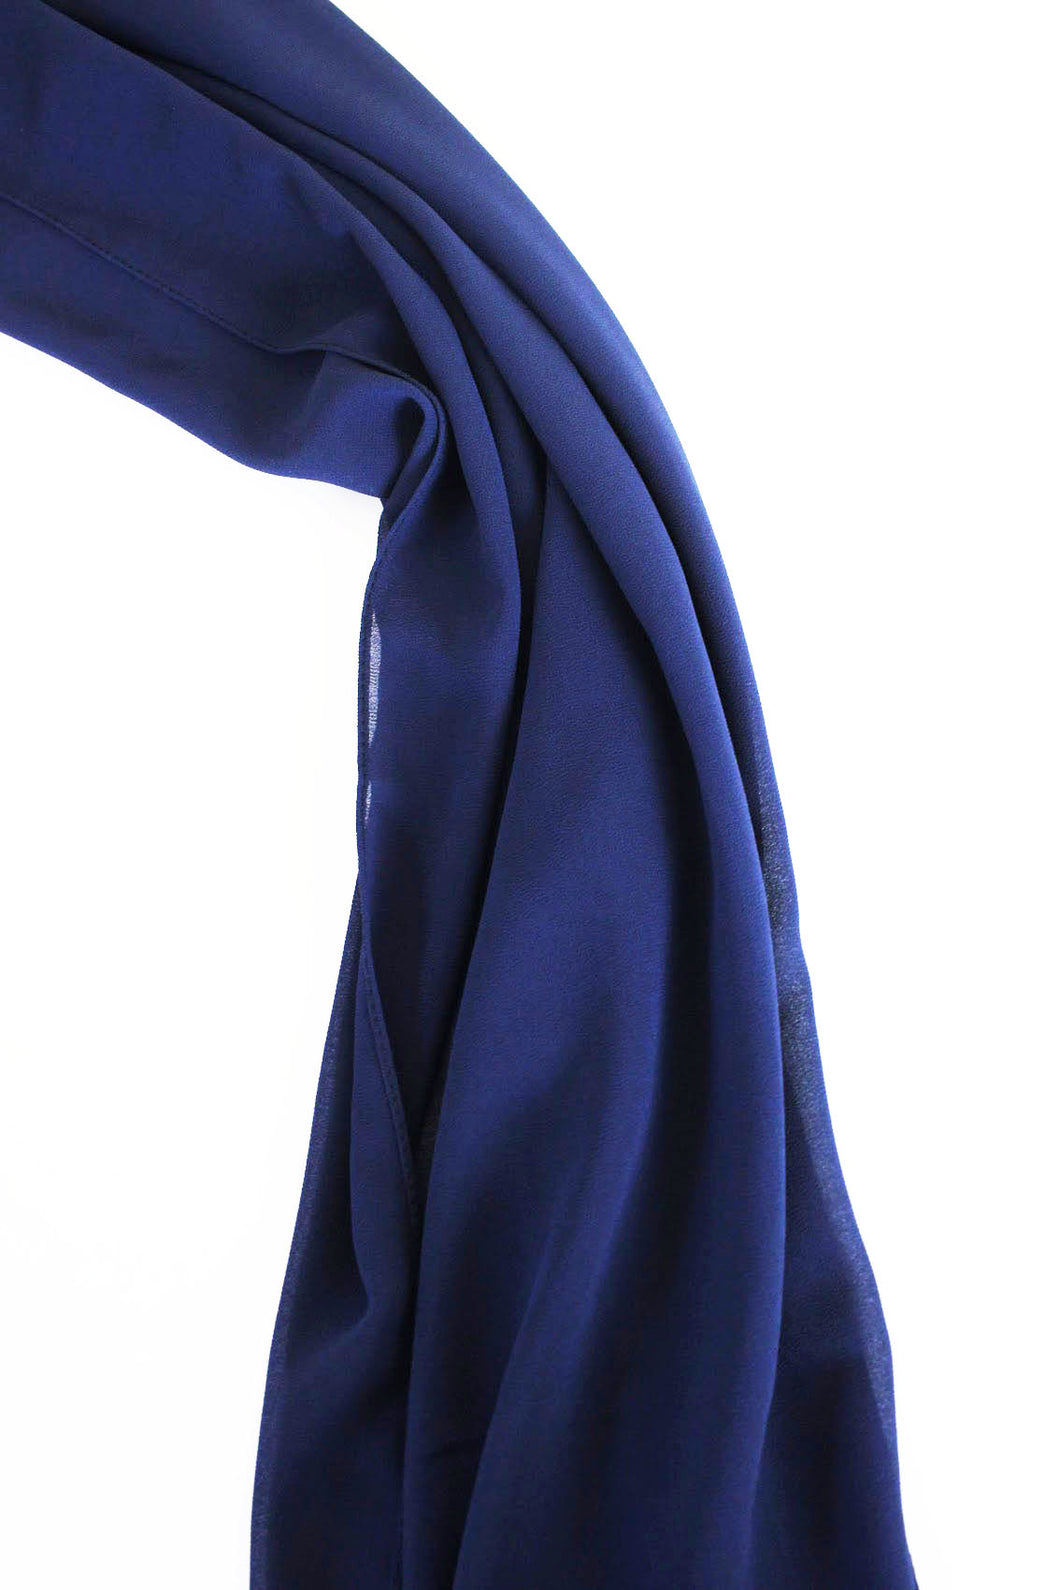 Midnight Blue - Chiffon